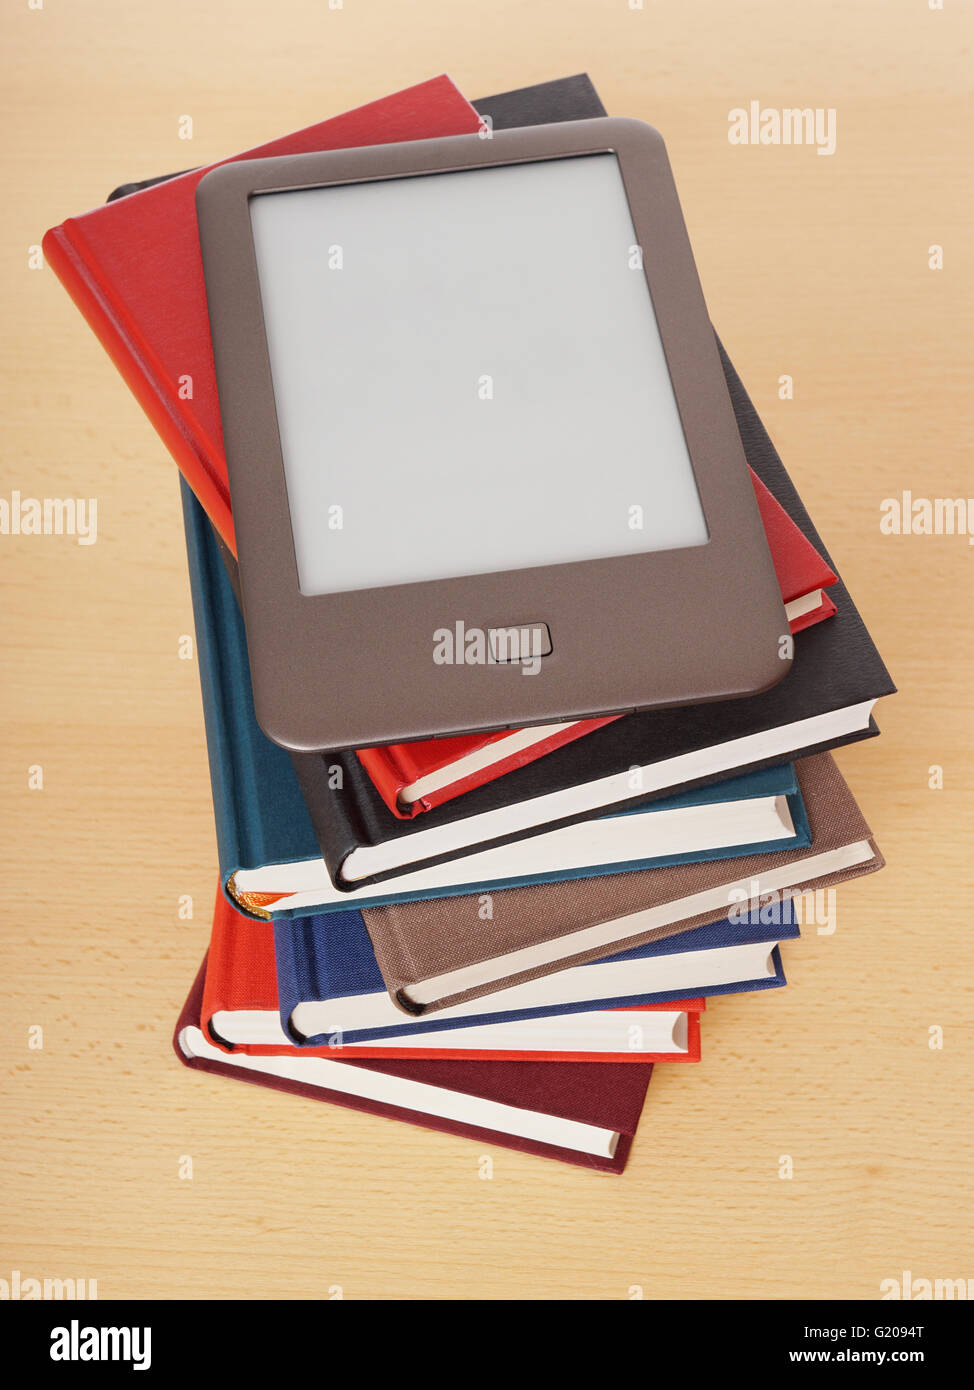 E-Book Reader on pile of books Photo Stock